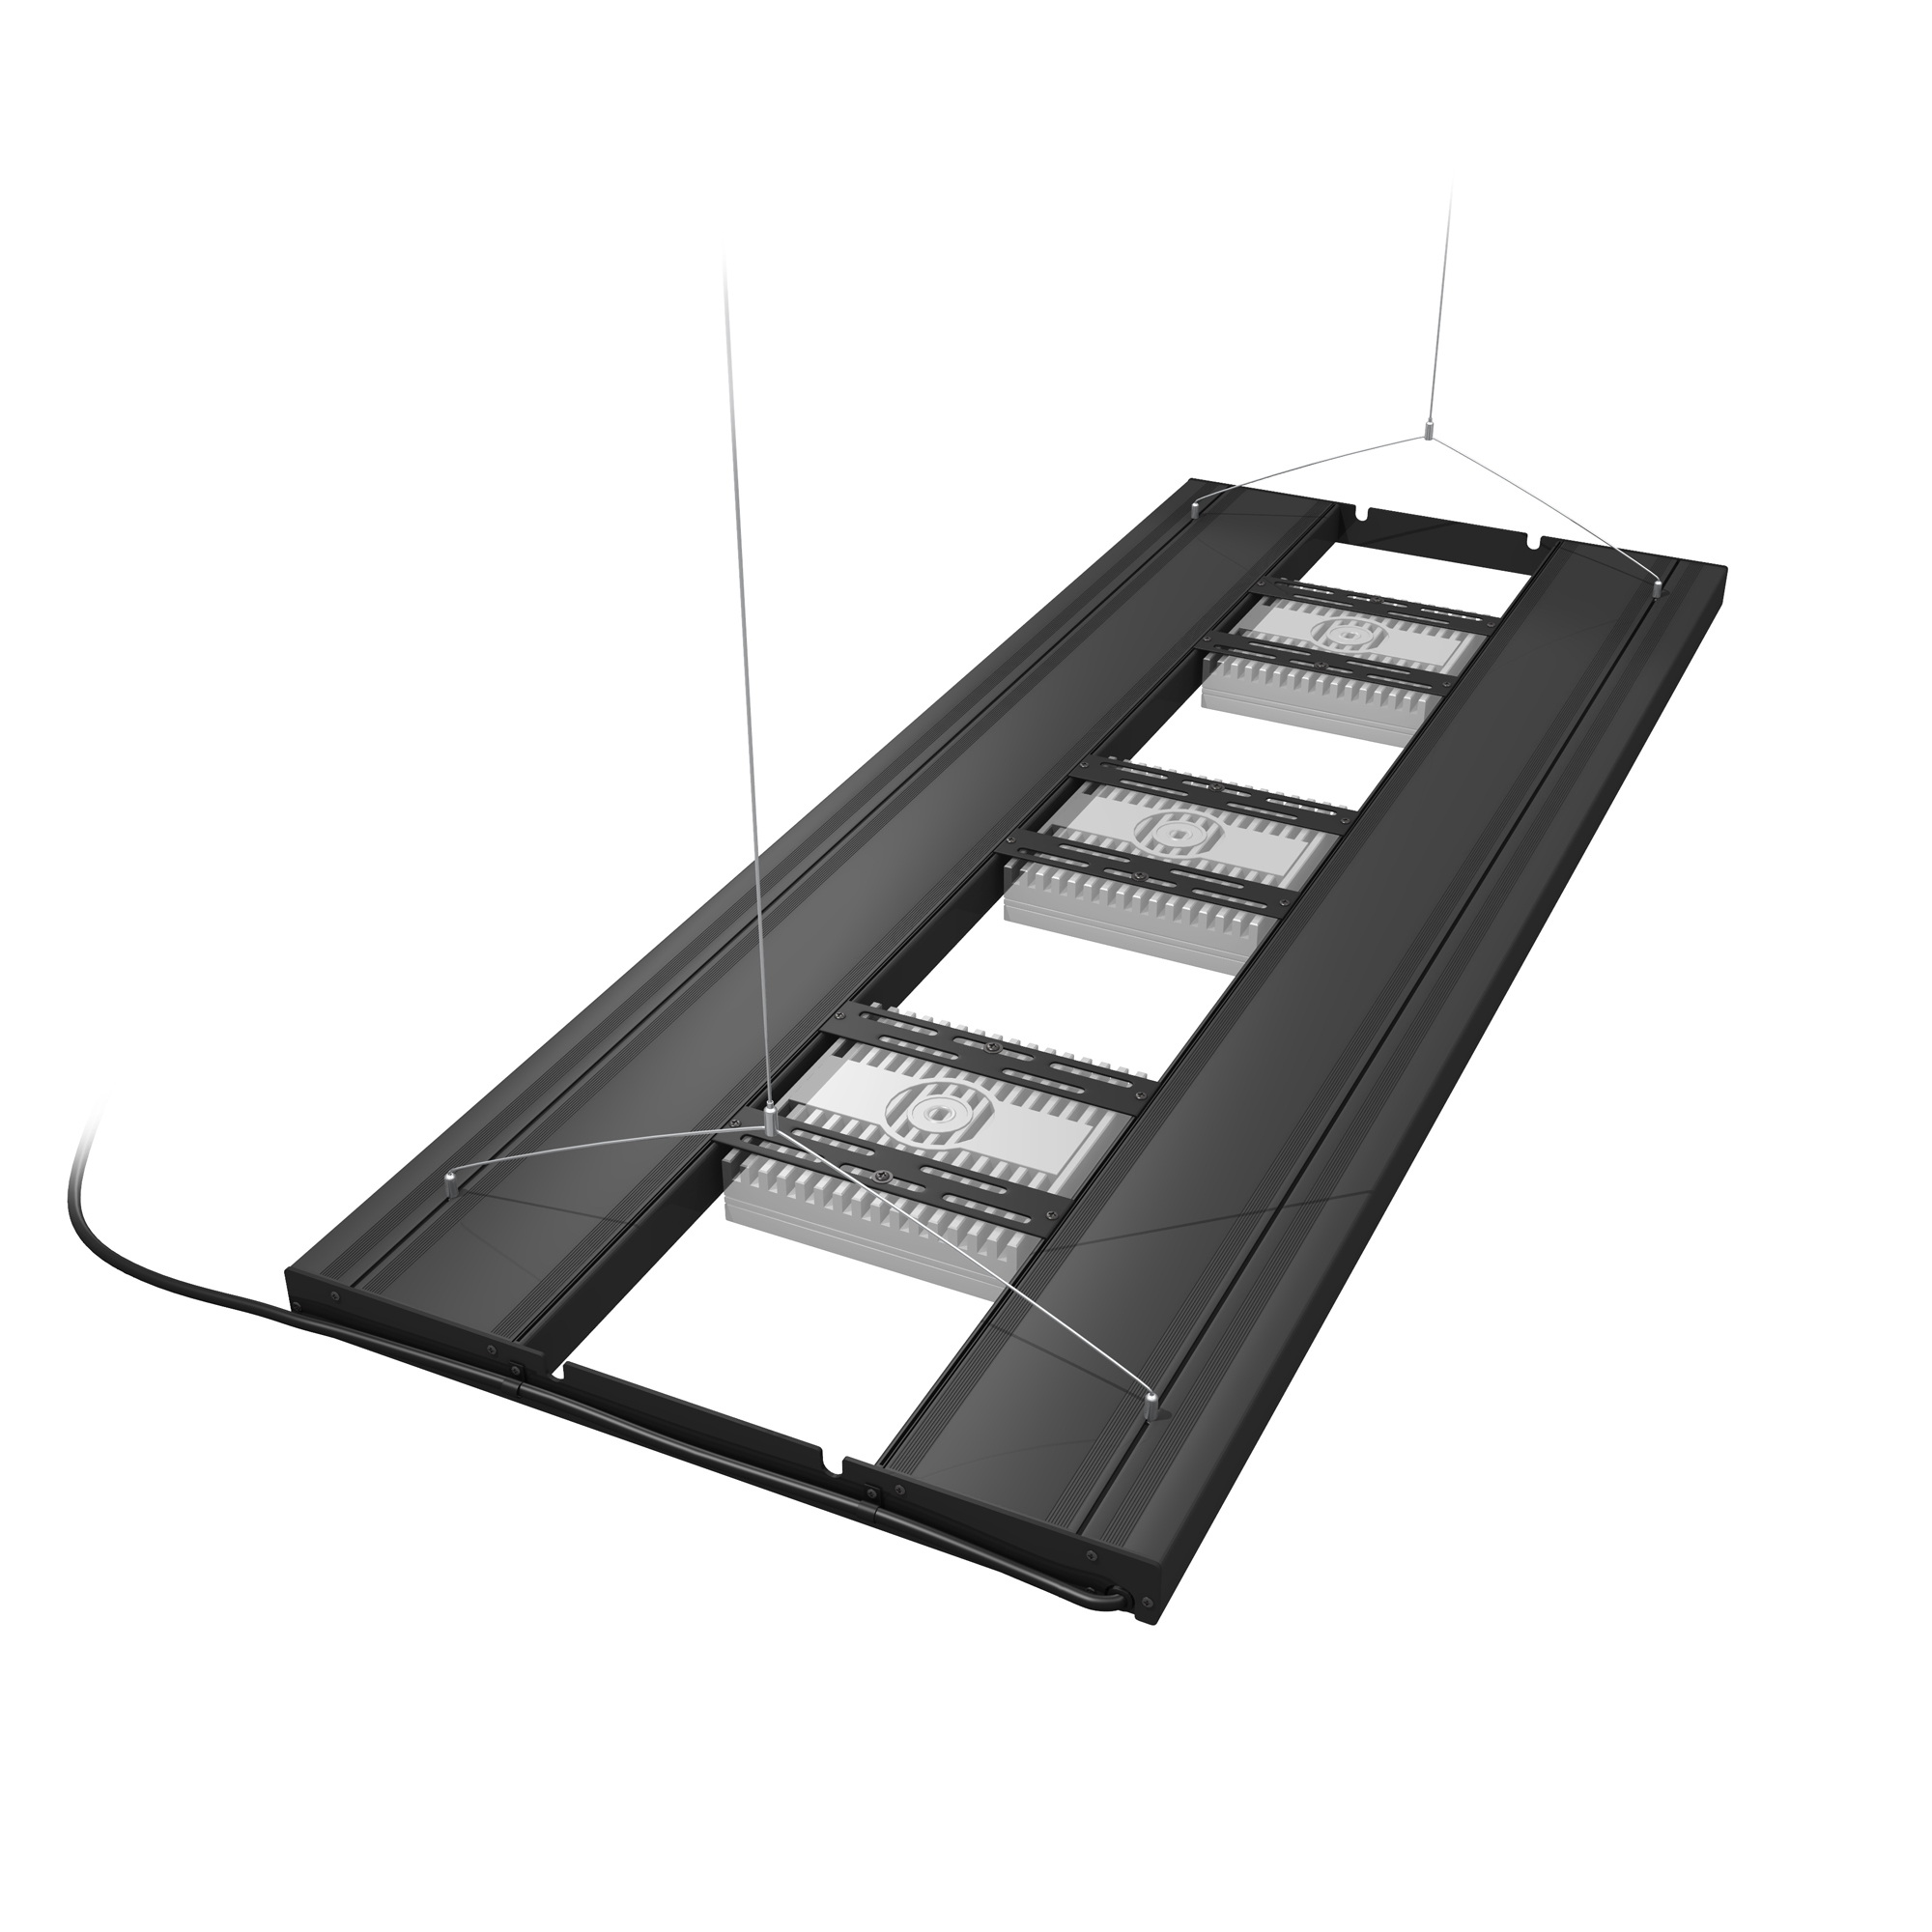 48 Hybrid T5ho 4x54w Fixture With Led Mounting System Aquatic Life Bulk Reef Supply